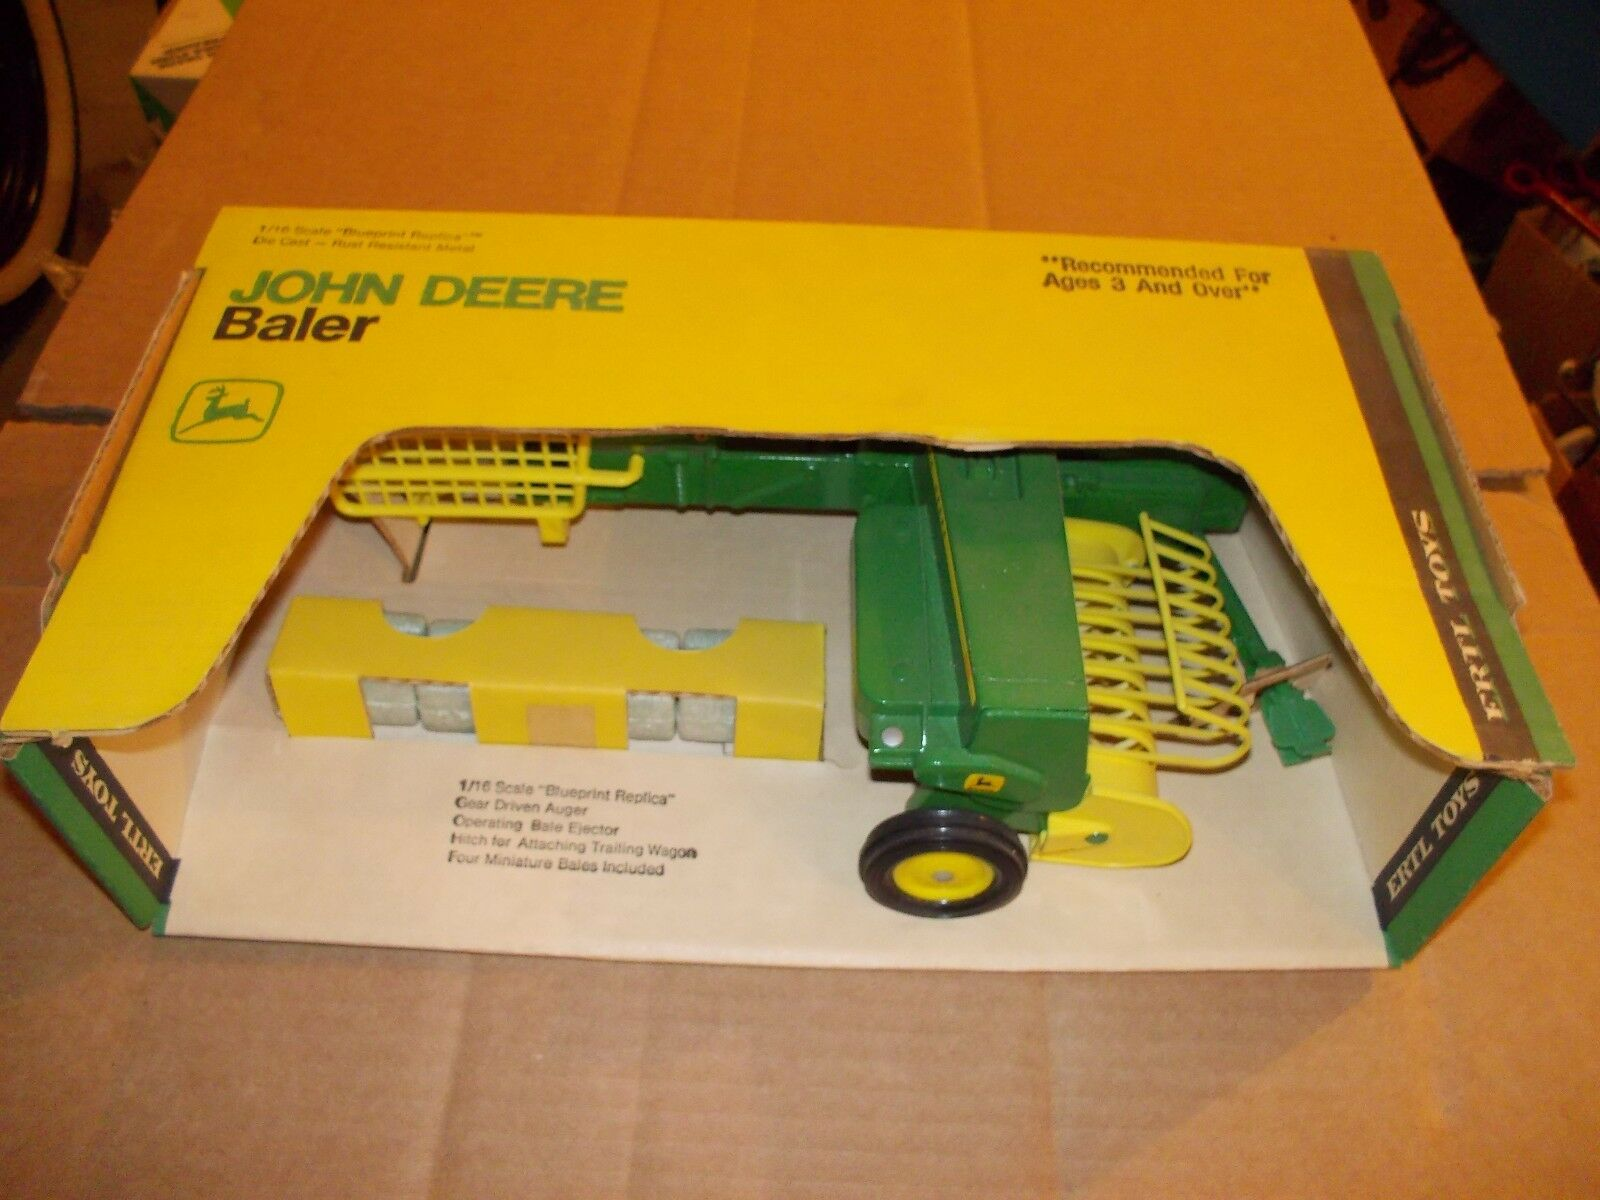 John Deere Botteleuse JD échelle 1 16 Vintage ERTL co. New in Box NW en boîte 585 1st édition